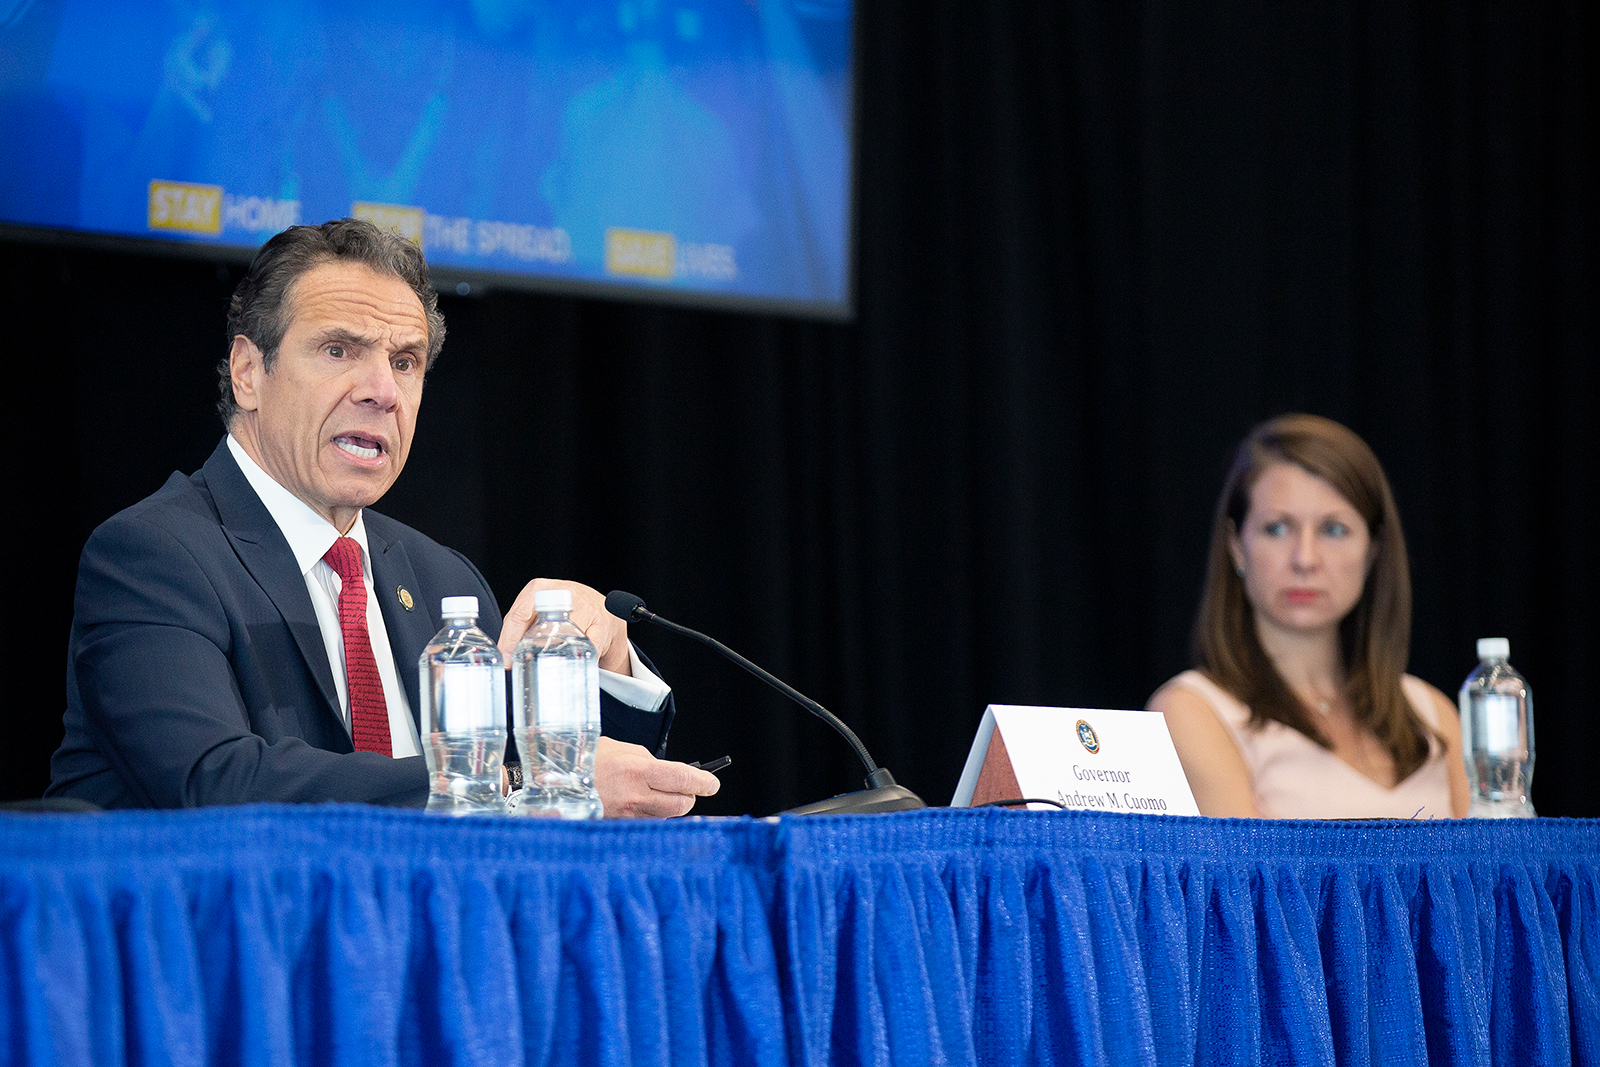 Melissa DeRosa, secretary to the governor, right, listens as New York Gov. Andrew Cuomo speaks during his daily coronavirus press briefing at SUNY Upstate Medical University on April 28, in Syracuse, New York.